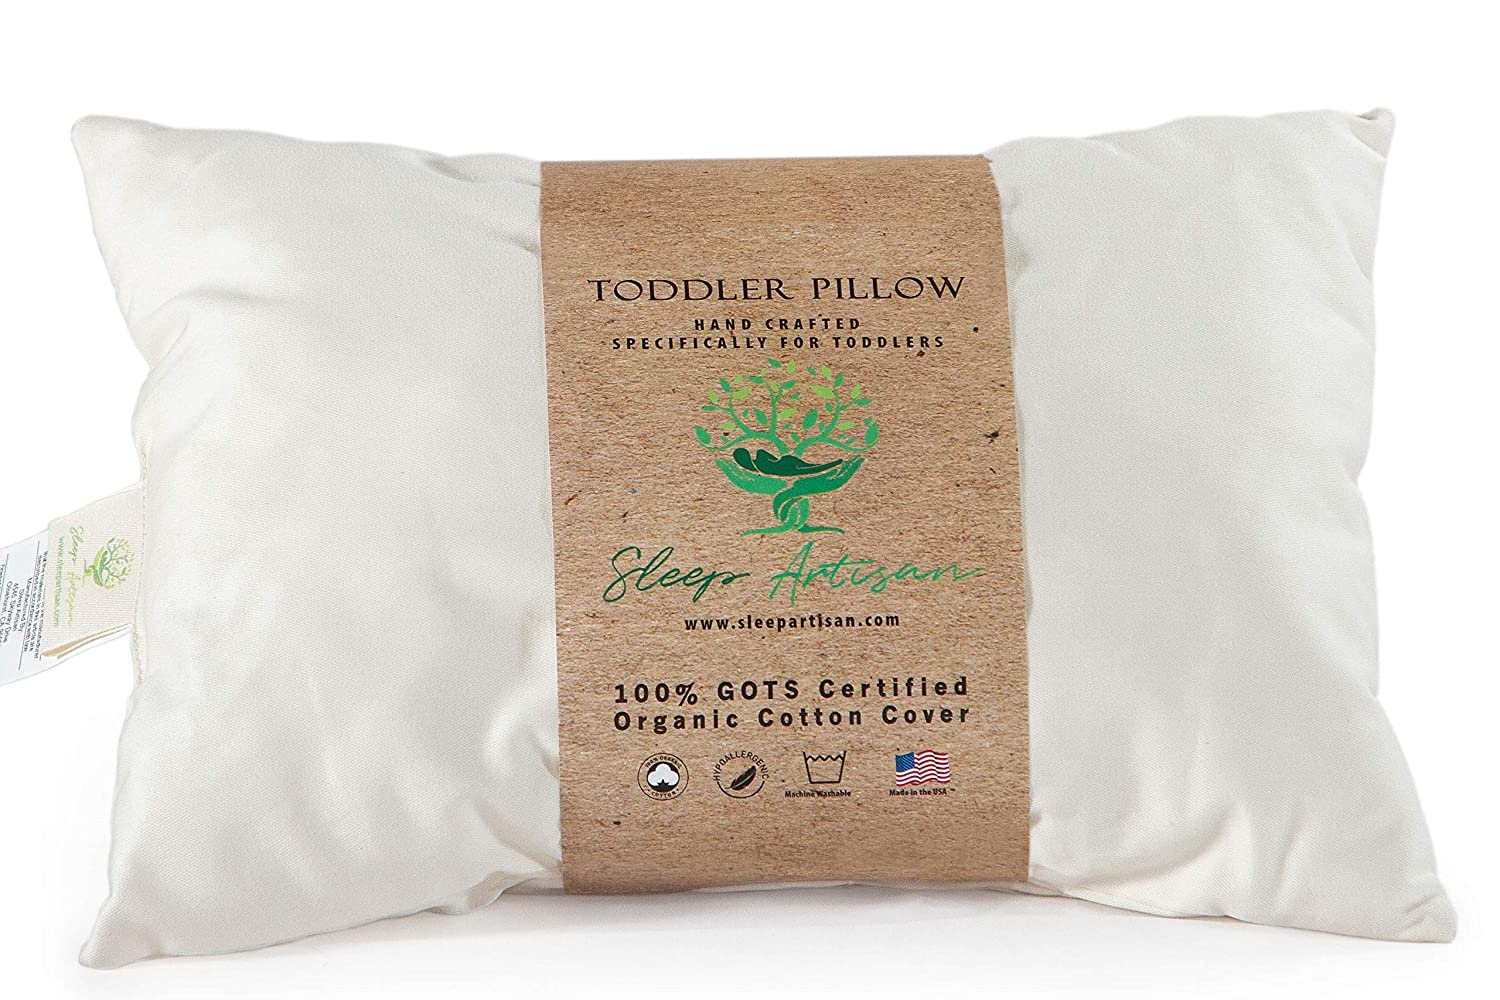 Toddler Pillow for Sleeping - GOTS Certified Organic Cotton Cover, Machine Washable and Hypoallergenic, 13' x 18' Small Pillow for Travel - Made in USA by Sleep Artisan 13 x 18 Small Pillow for Travel - Made in USA by Sleep Artisan Sleeping Pure